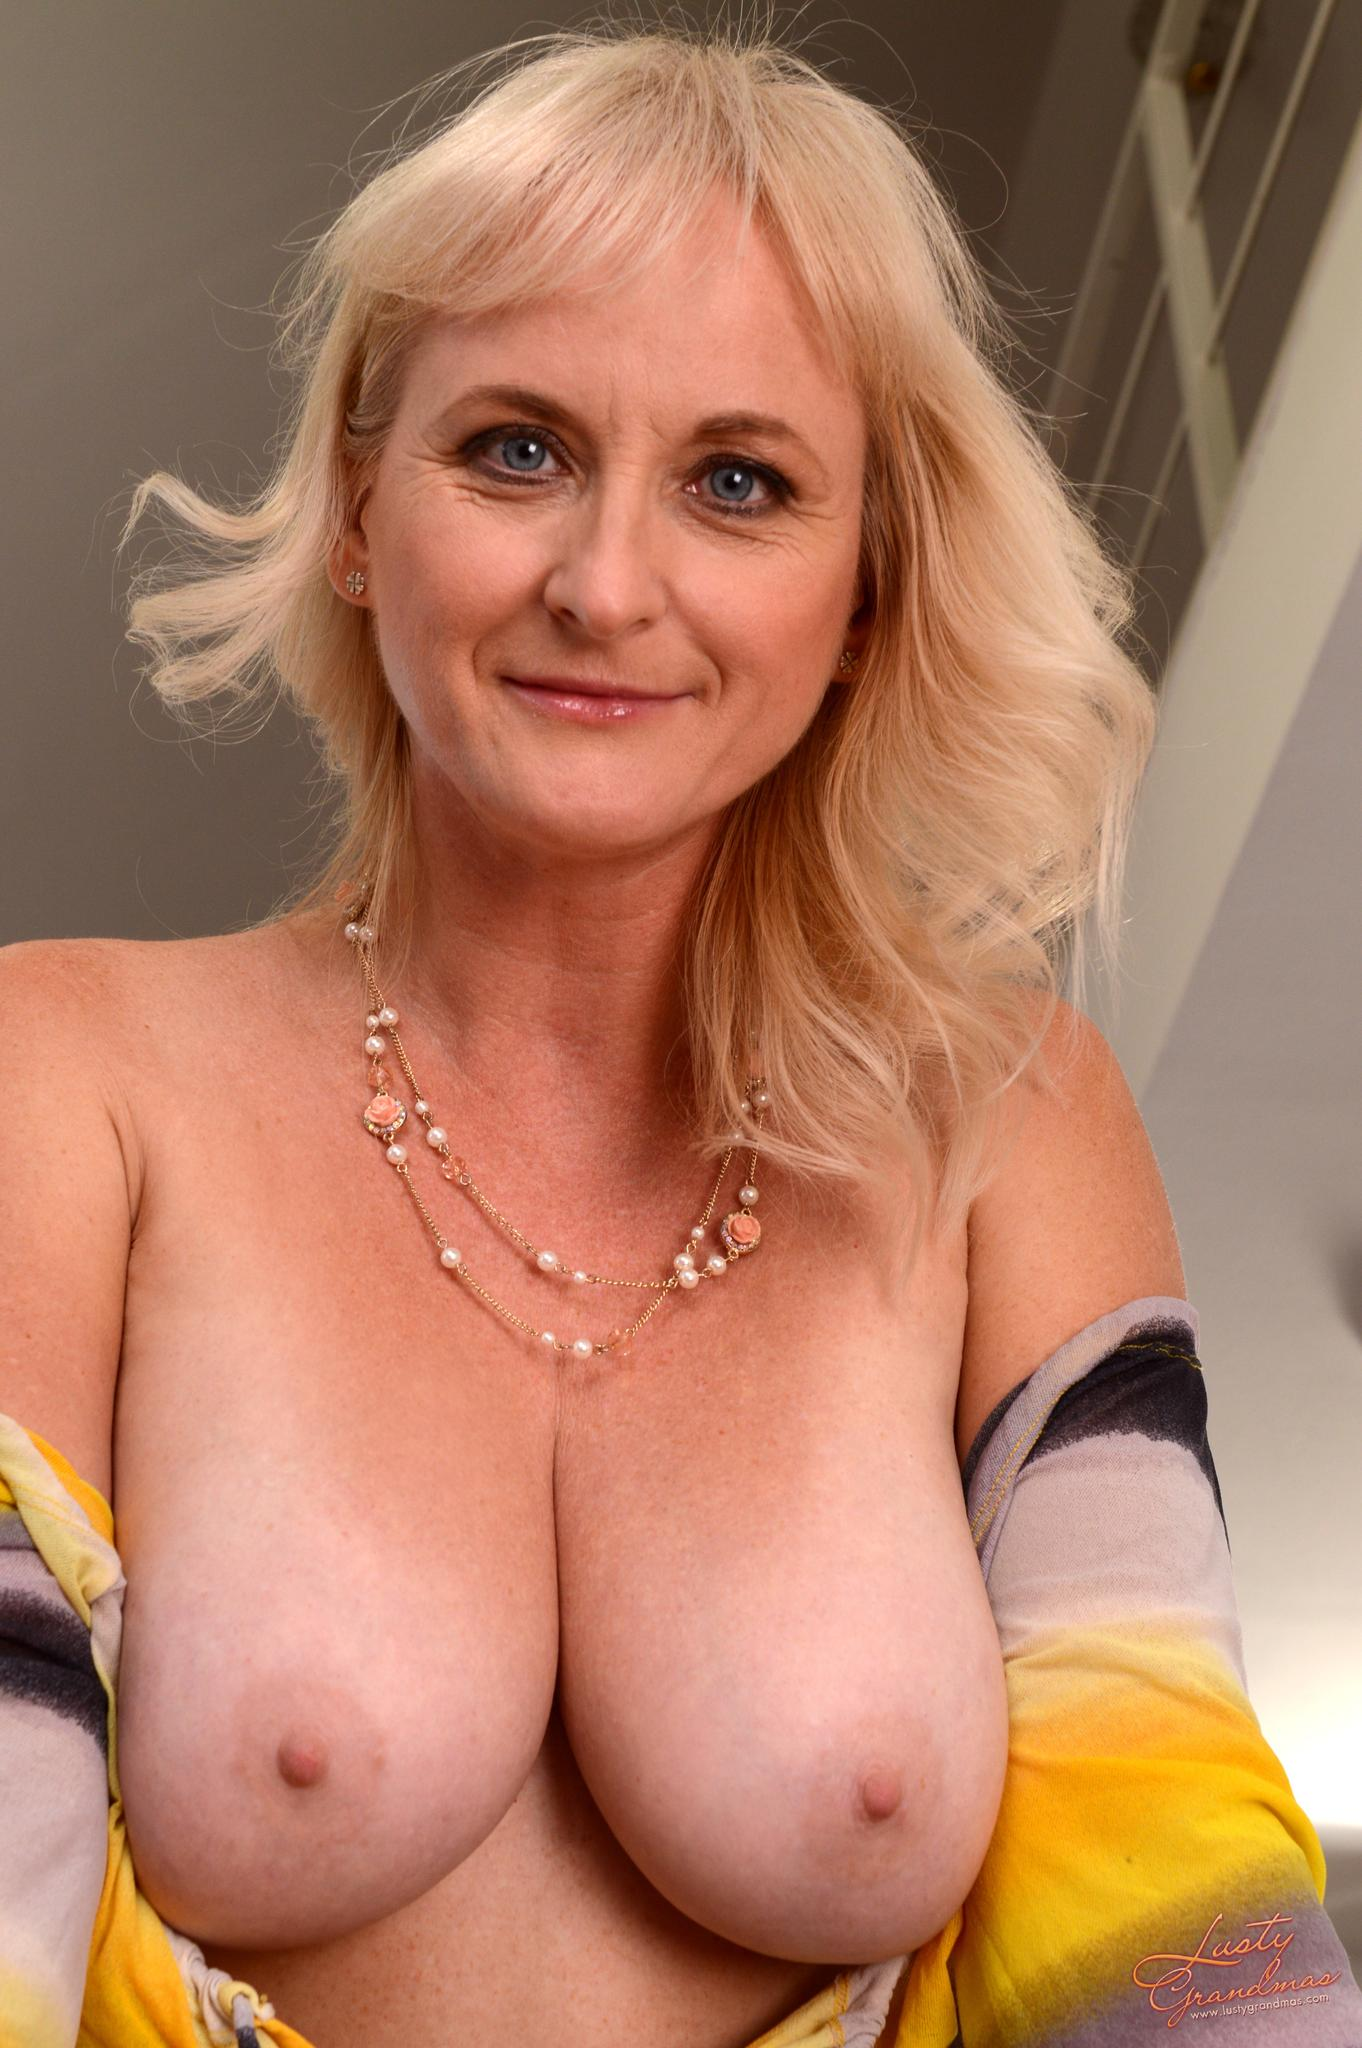 Reply))) agree, Milf porn videos for free you